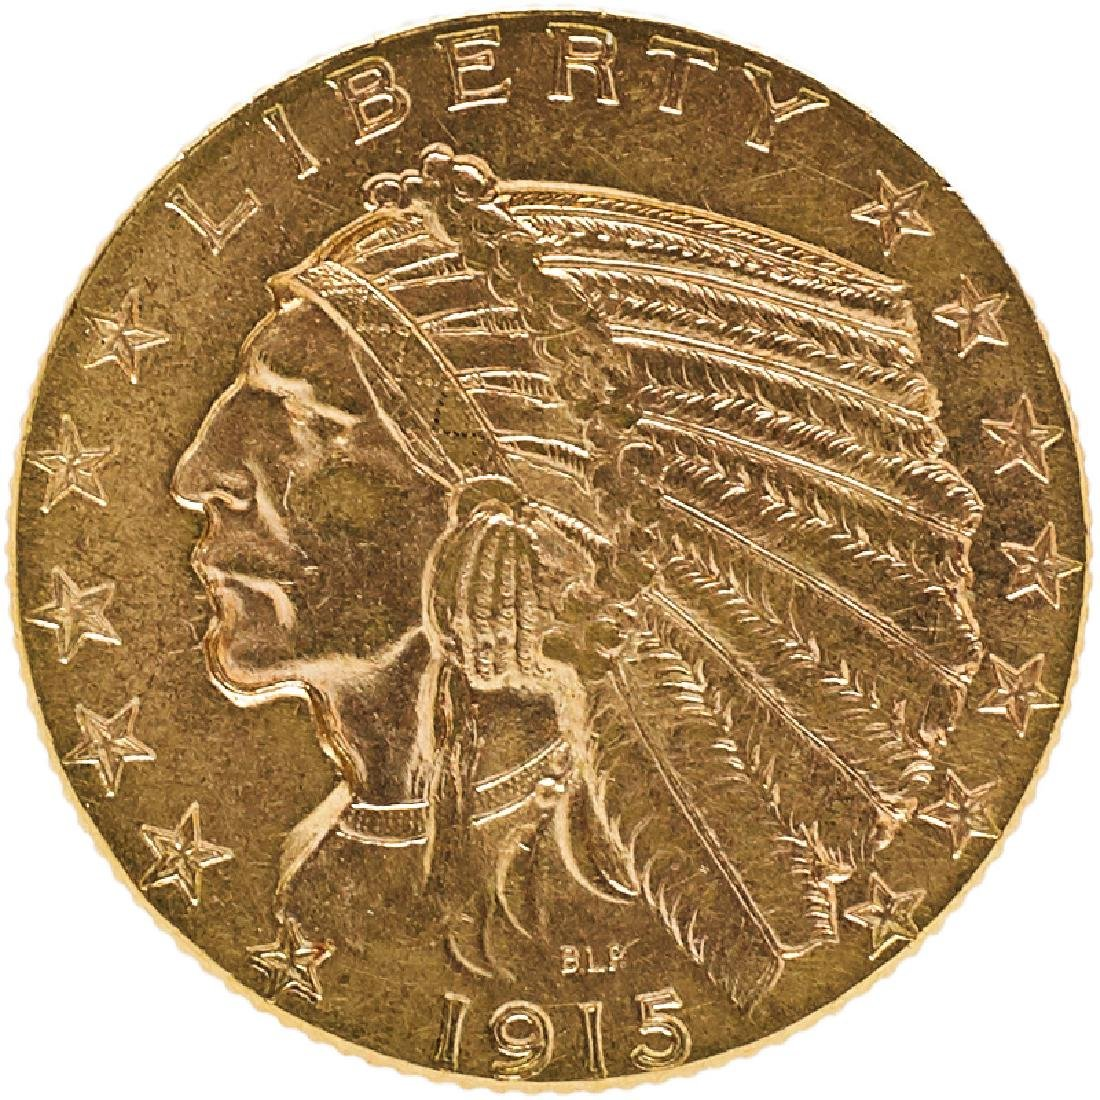 U.S. 1915 INDIAN $5 GOLD COIN